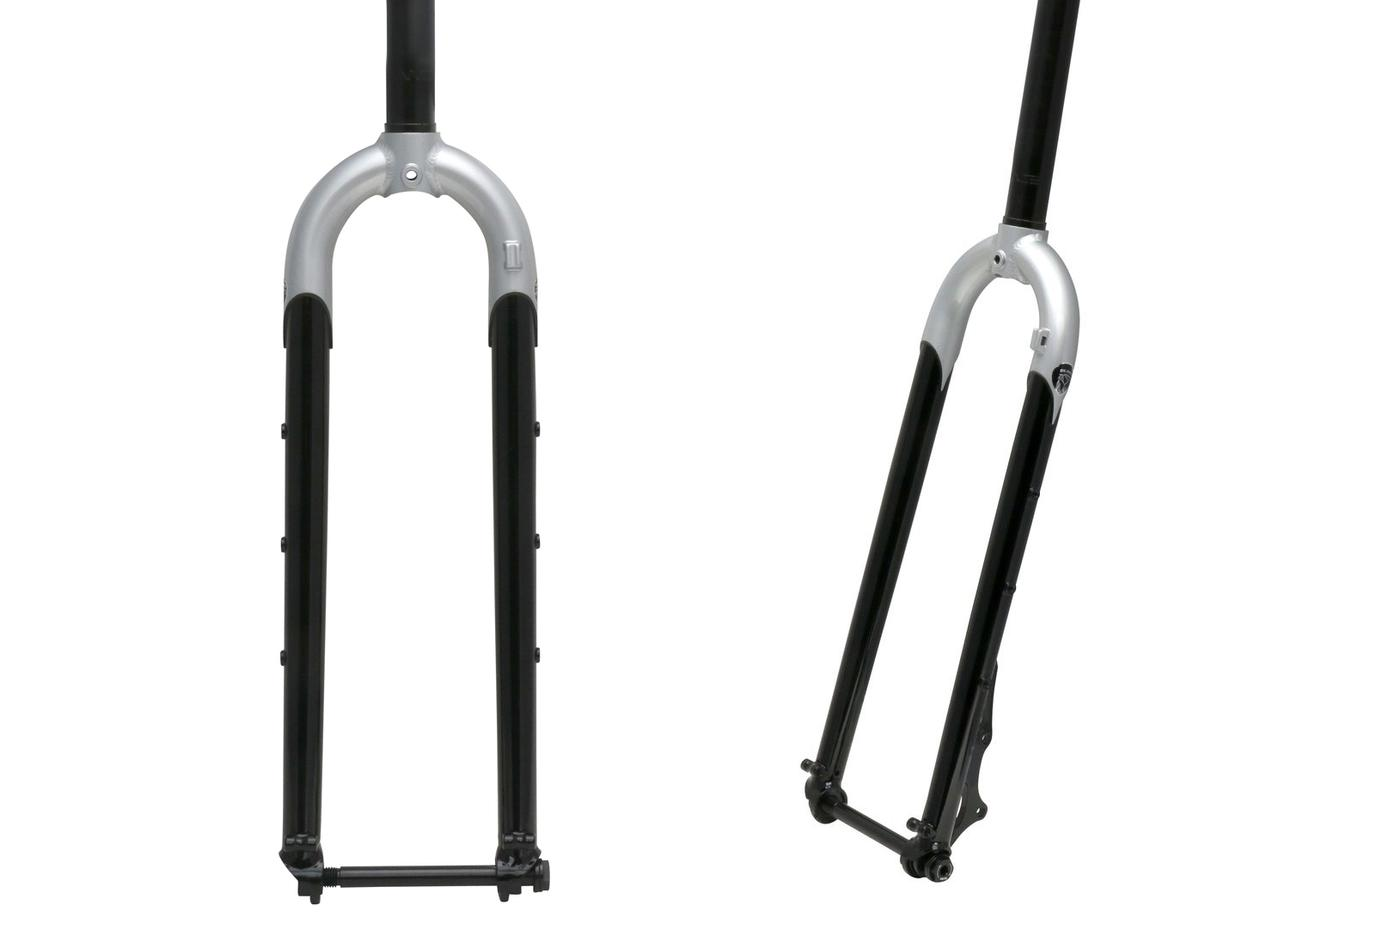 Steve Potts' Mountain Type II R Rigid Fork and Gravel Fork Is a Perfect Upgrade for a Gravel, Mountain or Touring Bike